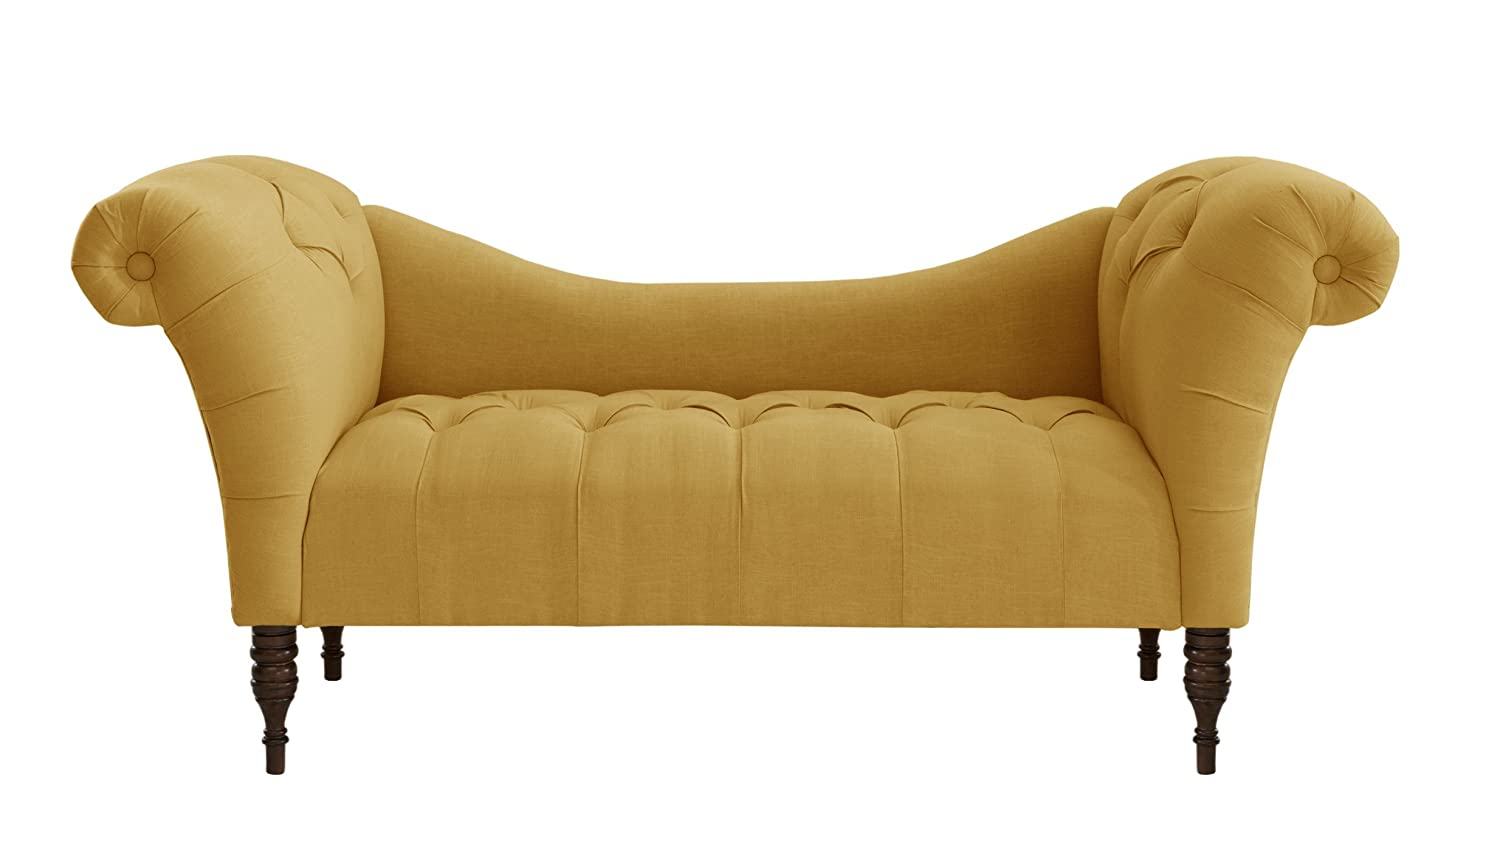 Amazon.com Skyline Furniture Tufted Chaise Lounge in Linen French Yellow Kitchen u0026 Dining  sc 1 st  Amazon.com : skyline chaise lounge - Sectionals, Sofas & Couches